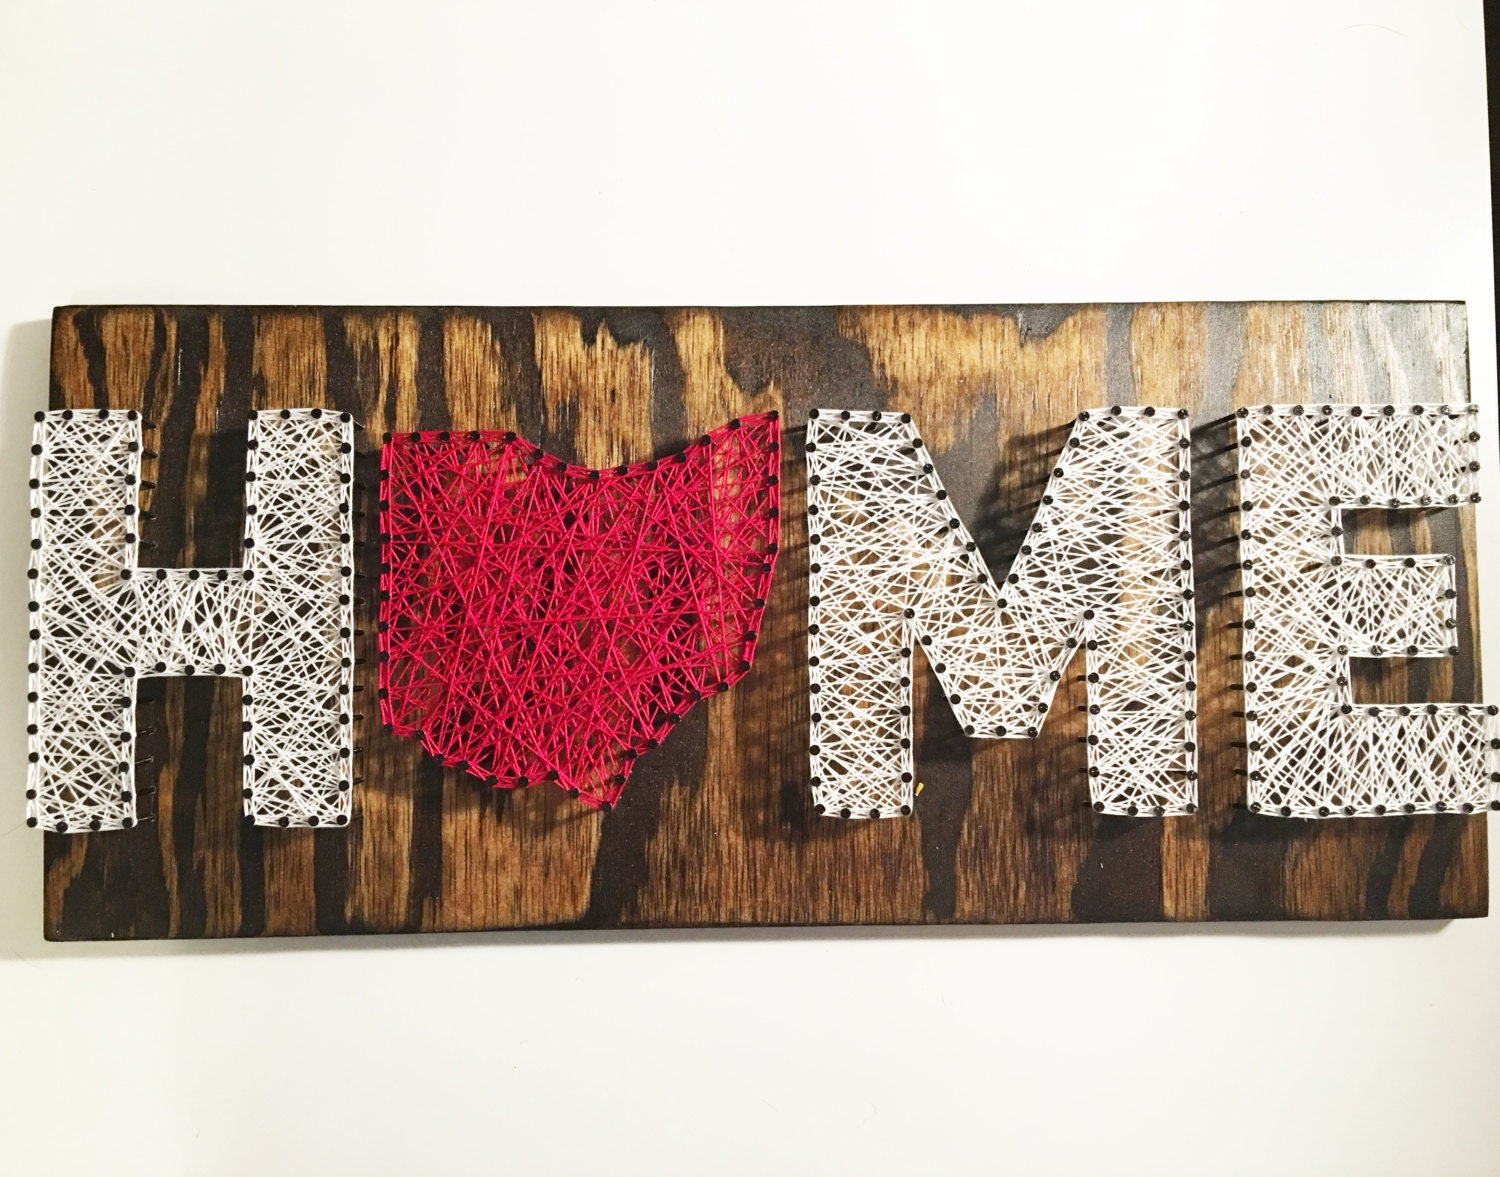 ohio home string art ohio string art home string art home decor ohio decor home is where the heart is home sign